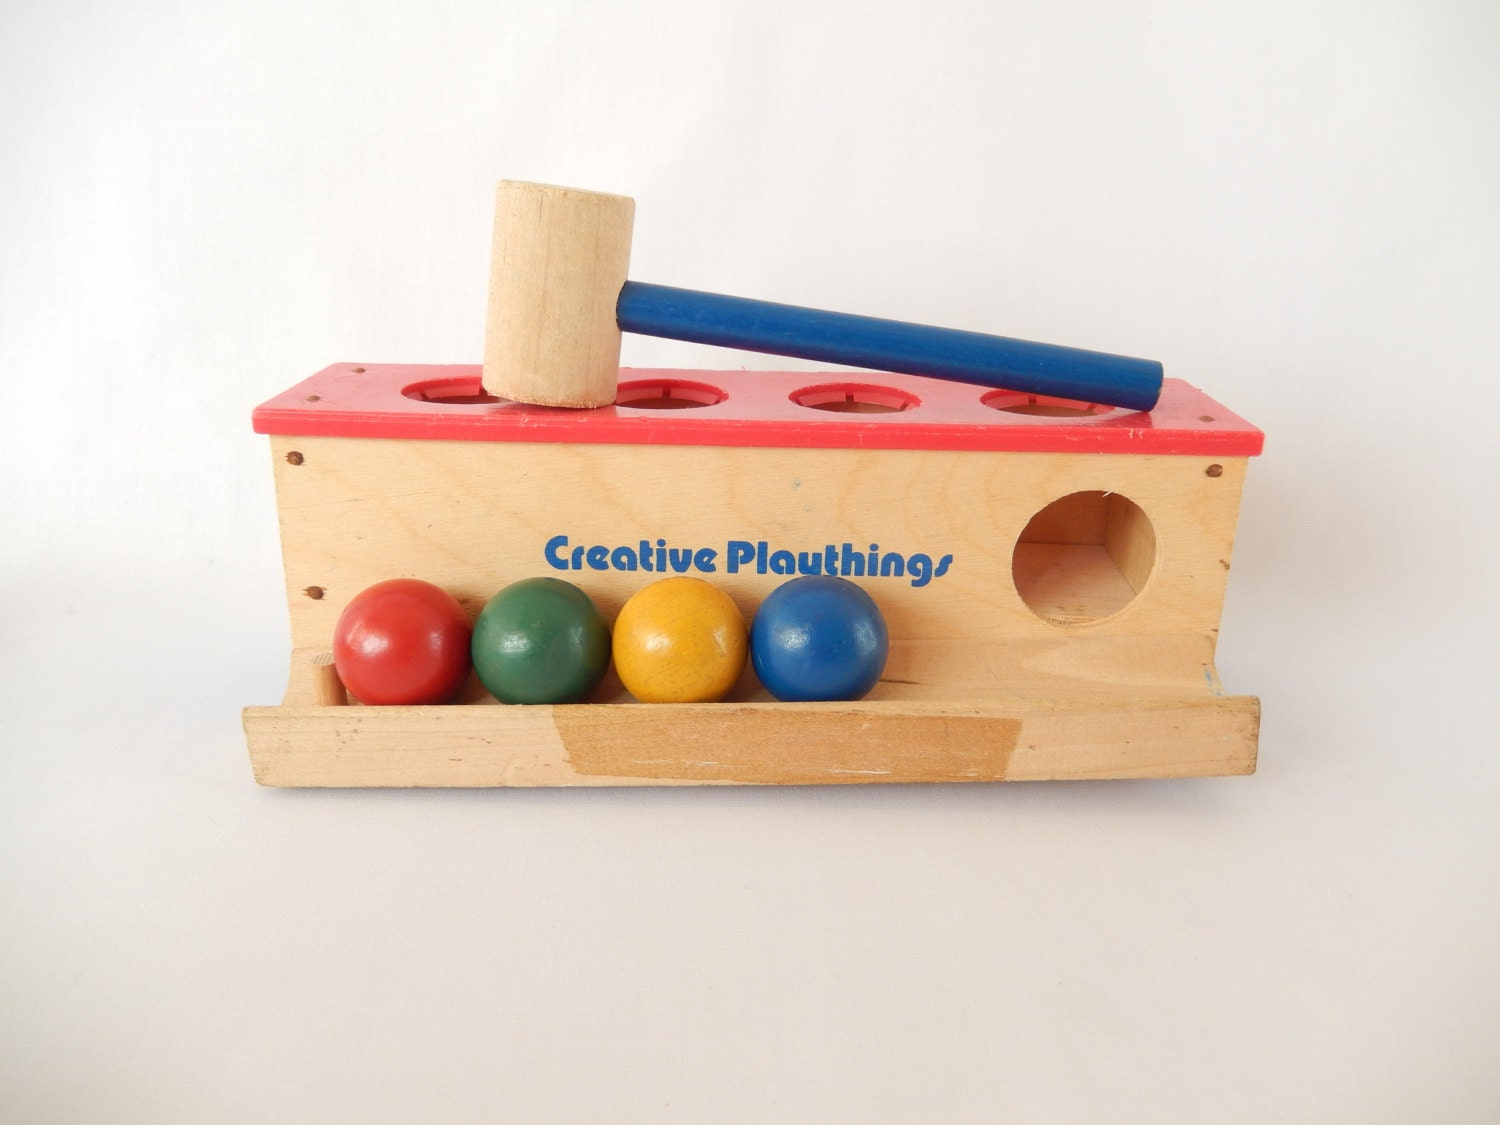 Pound A Ball Toy Toys : Creative playthings pound a ball toy vintage hammer